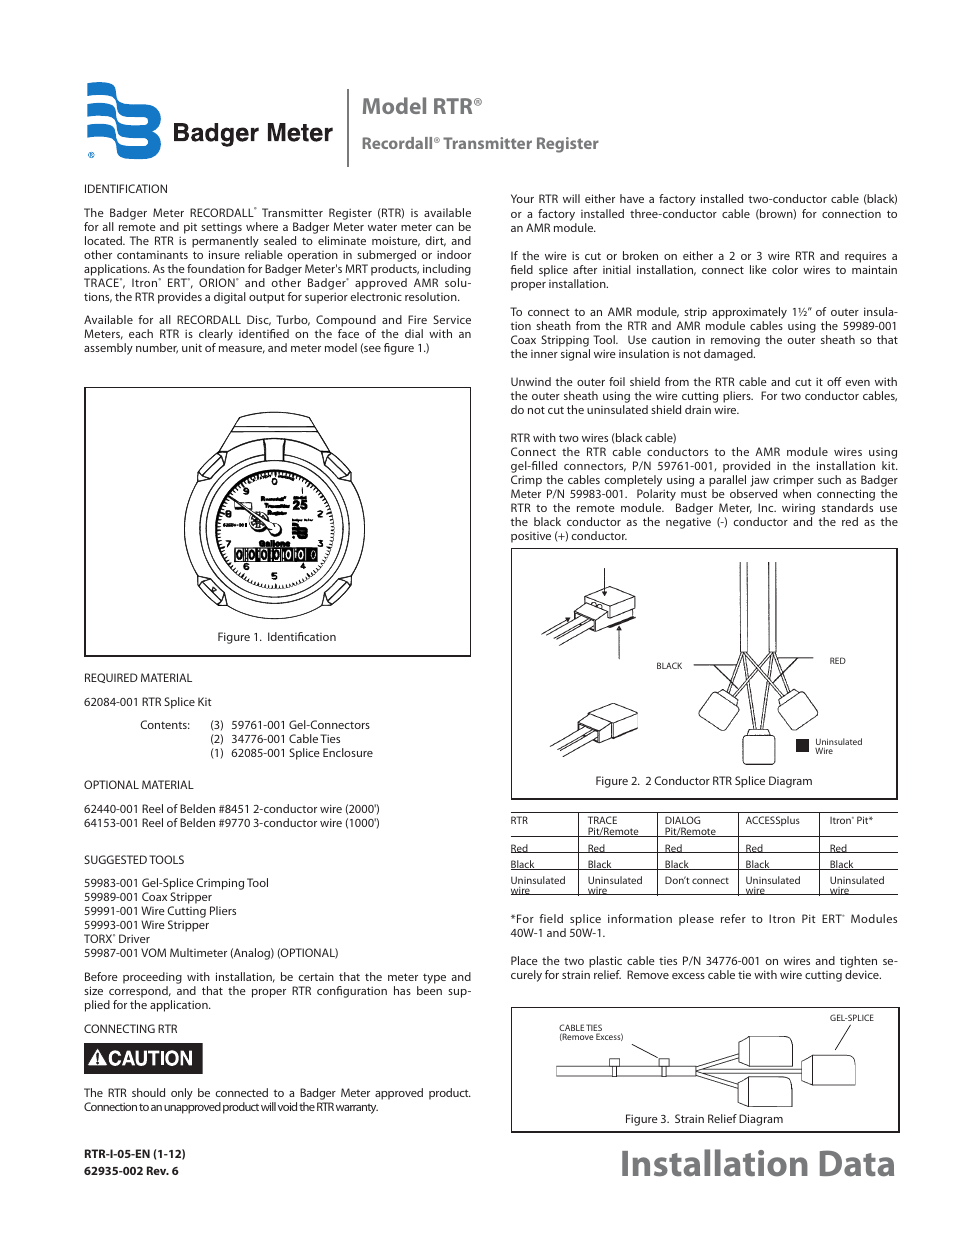 medium resolution of badger meter water conditioning user manual 2 pages also for recordall transmitter register